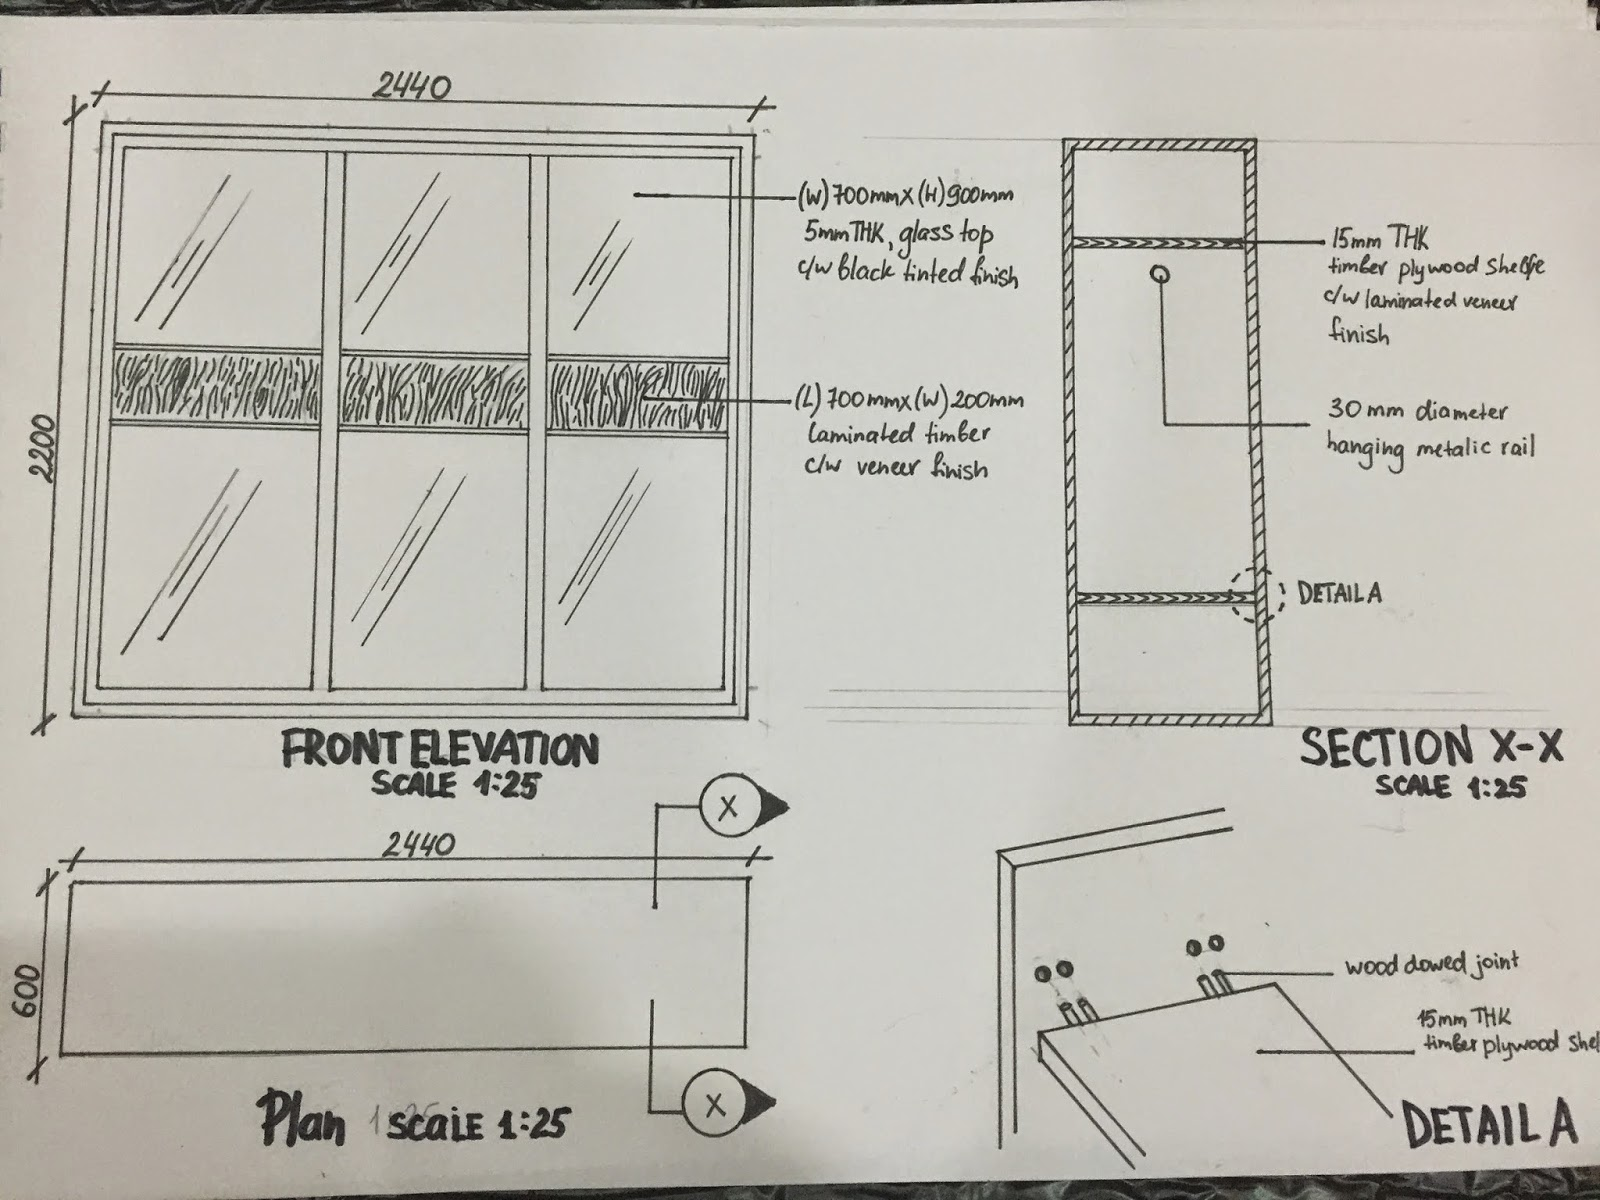 Wardrobe Plan Elevation Section : Detailing and working drawings april